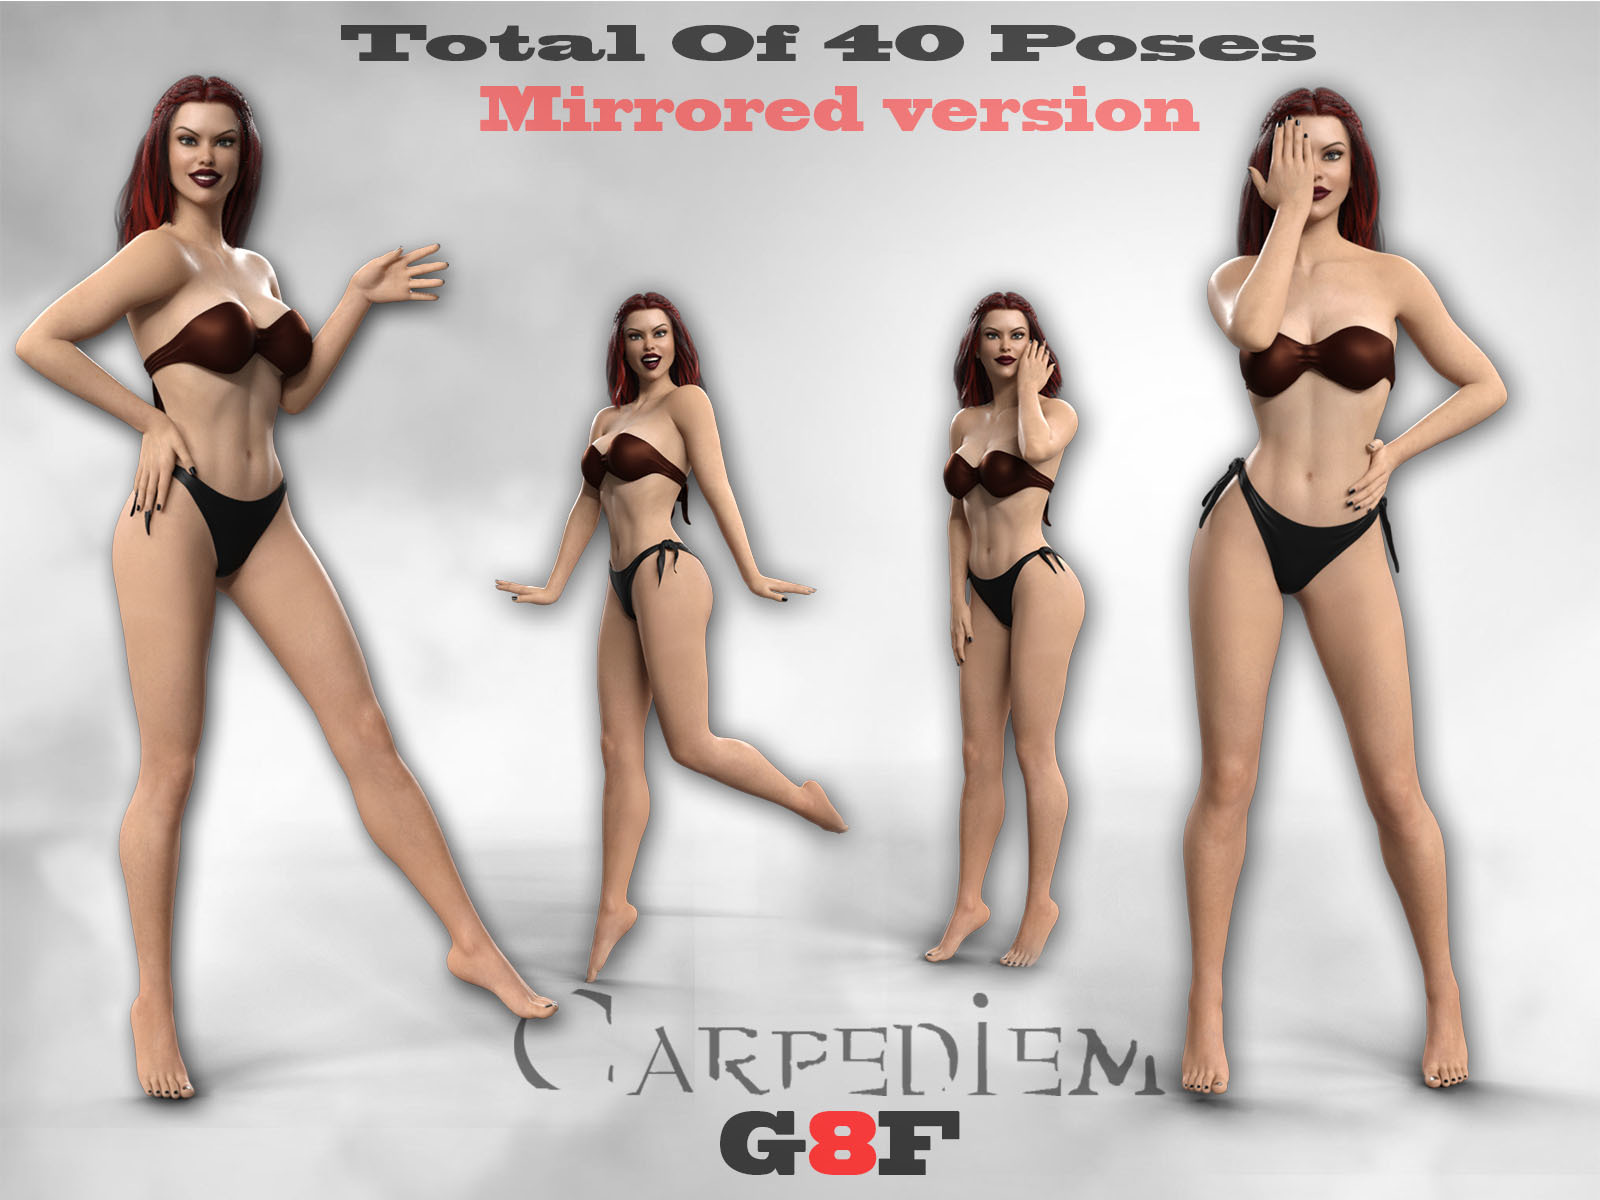 Cool Poses For G8F